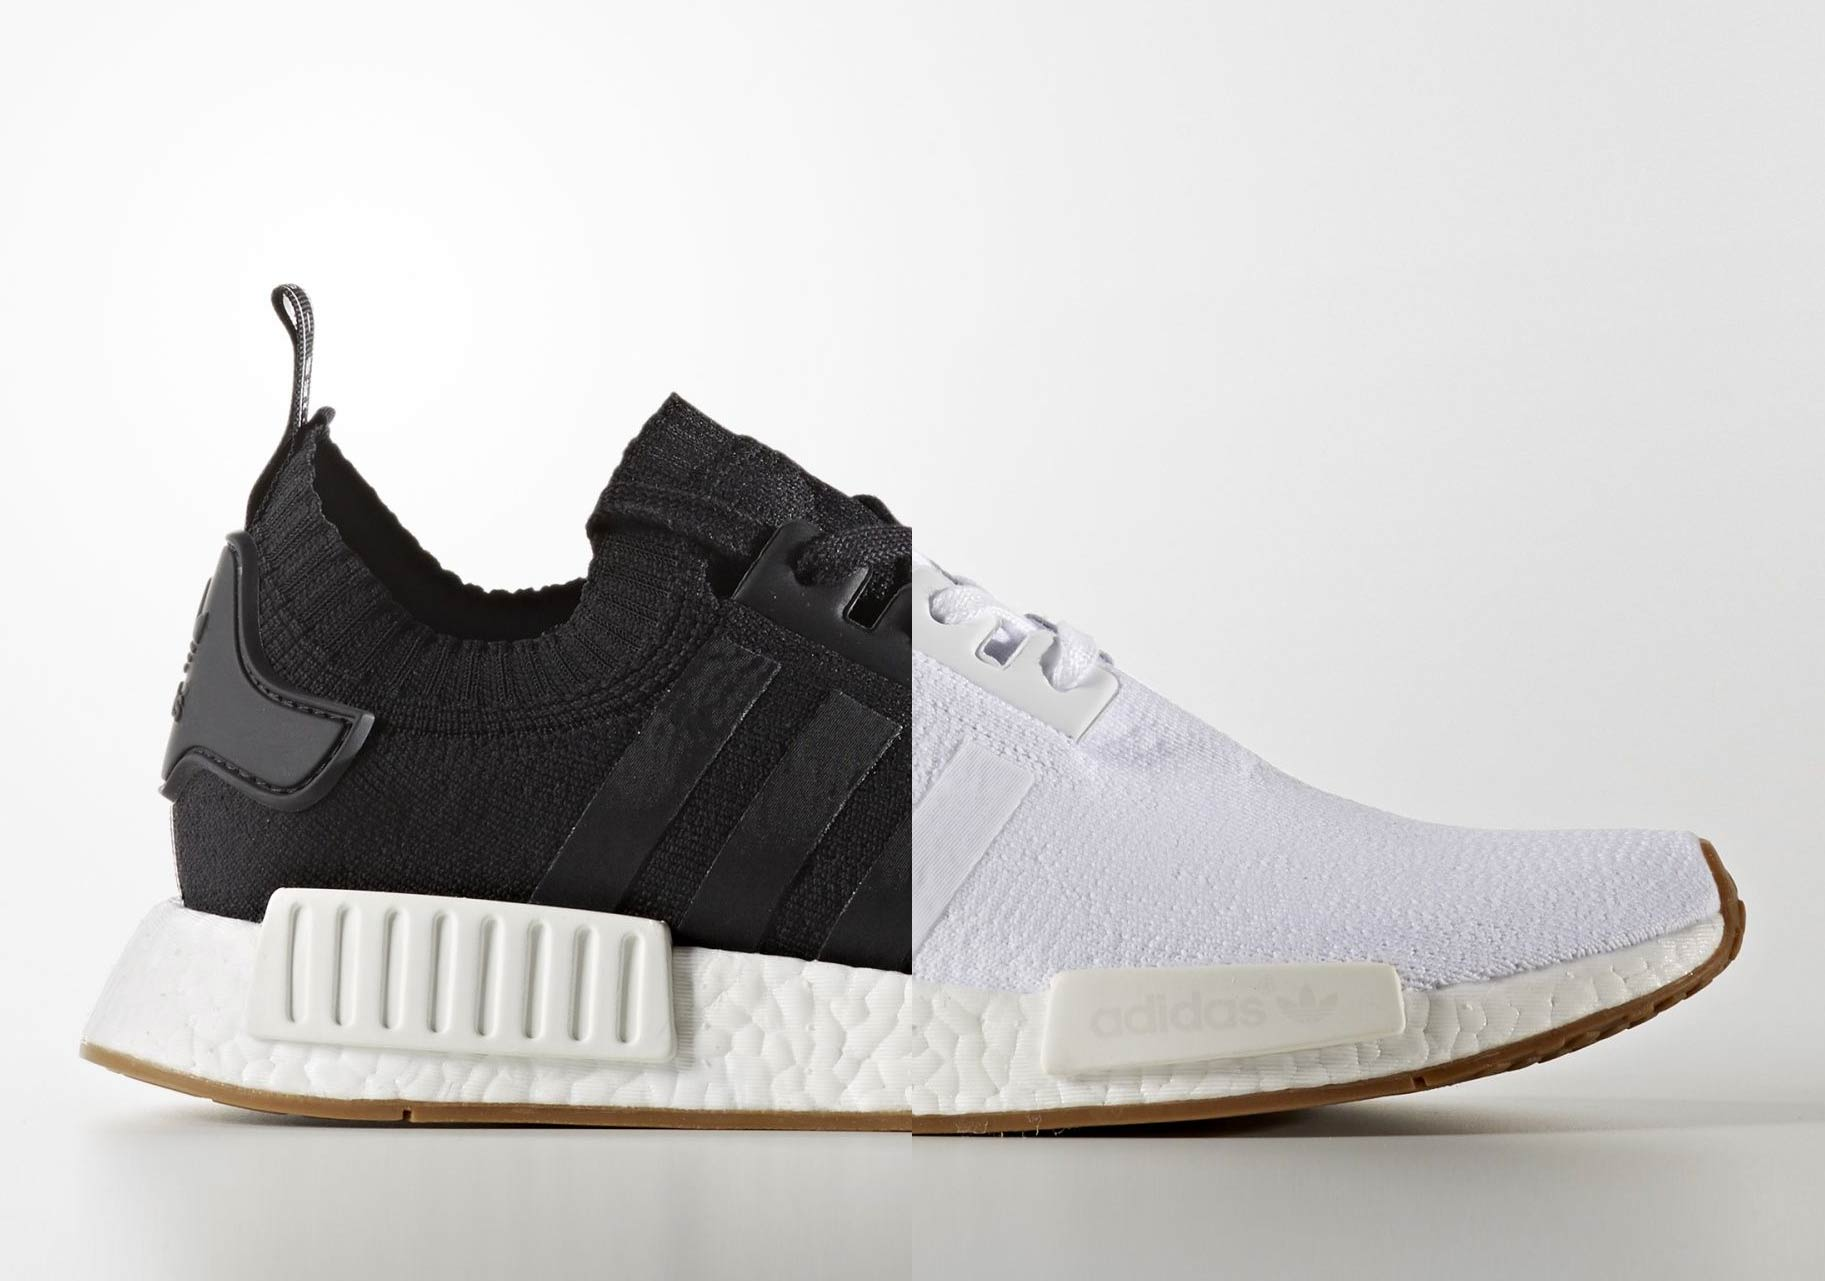 adidas NMD R1 Gum Pack Release Info  4c2823b24